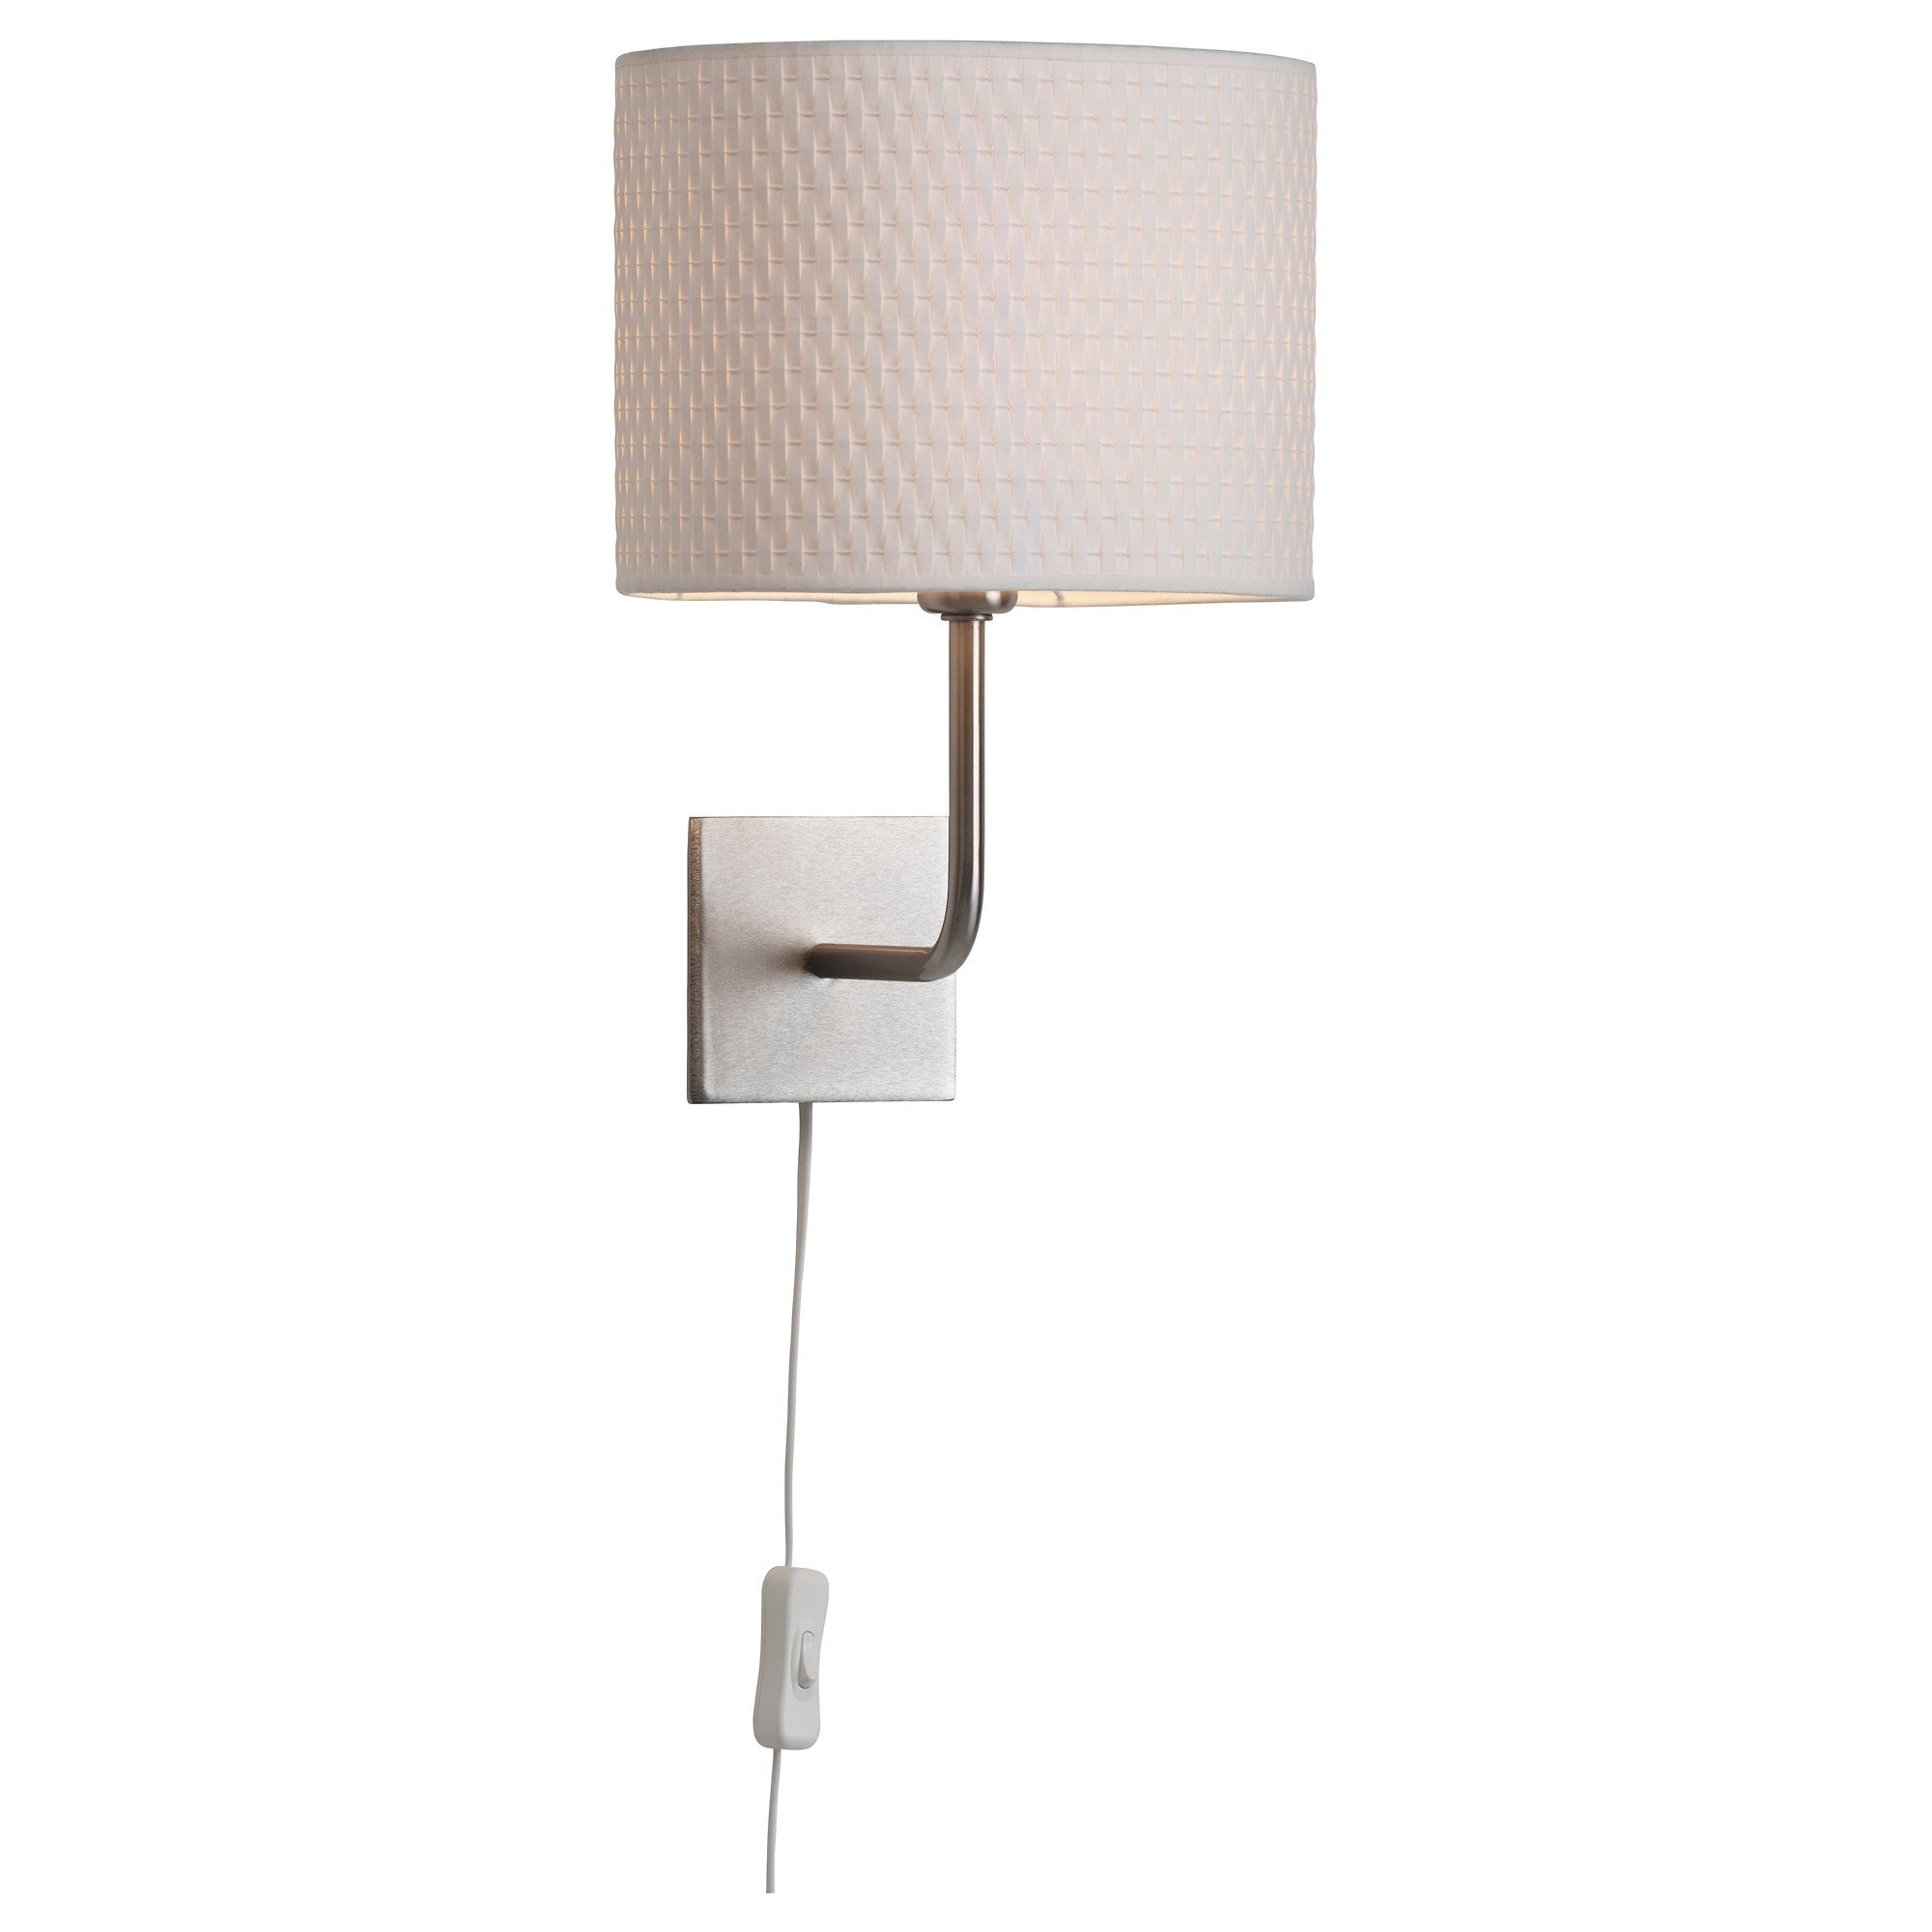 Most Popular Outdoor Wall Lights At Ikea Intended For Aläng Wall Lamp With Led Bulb – Ikea (View 10 of 20)